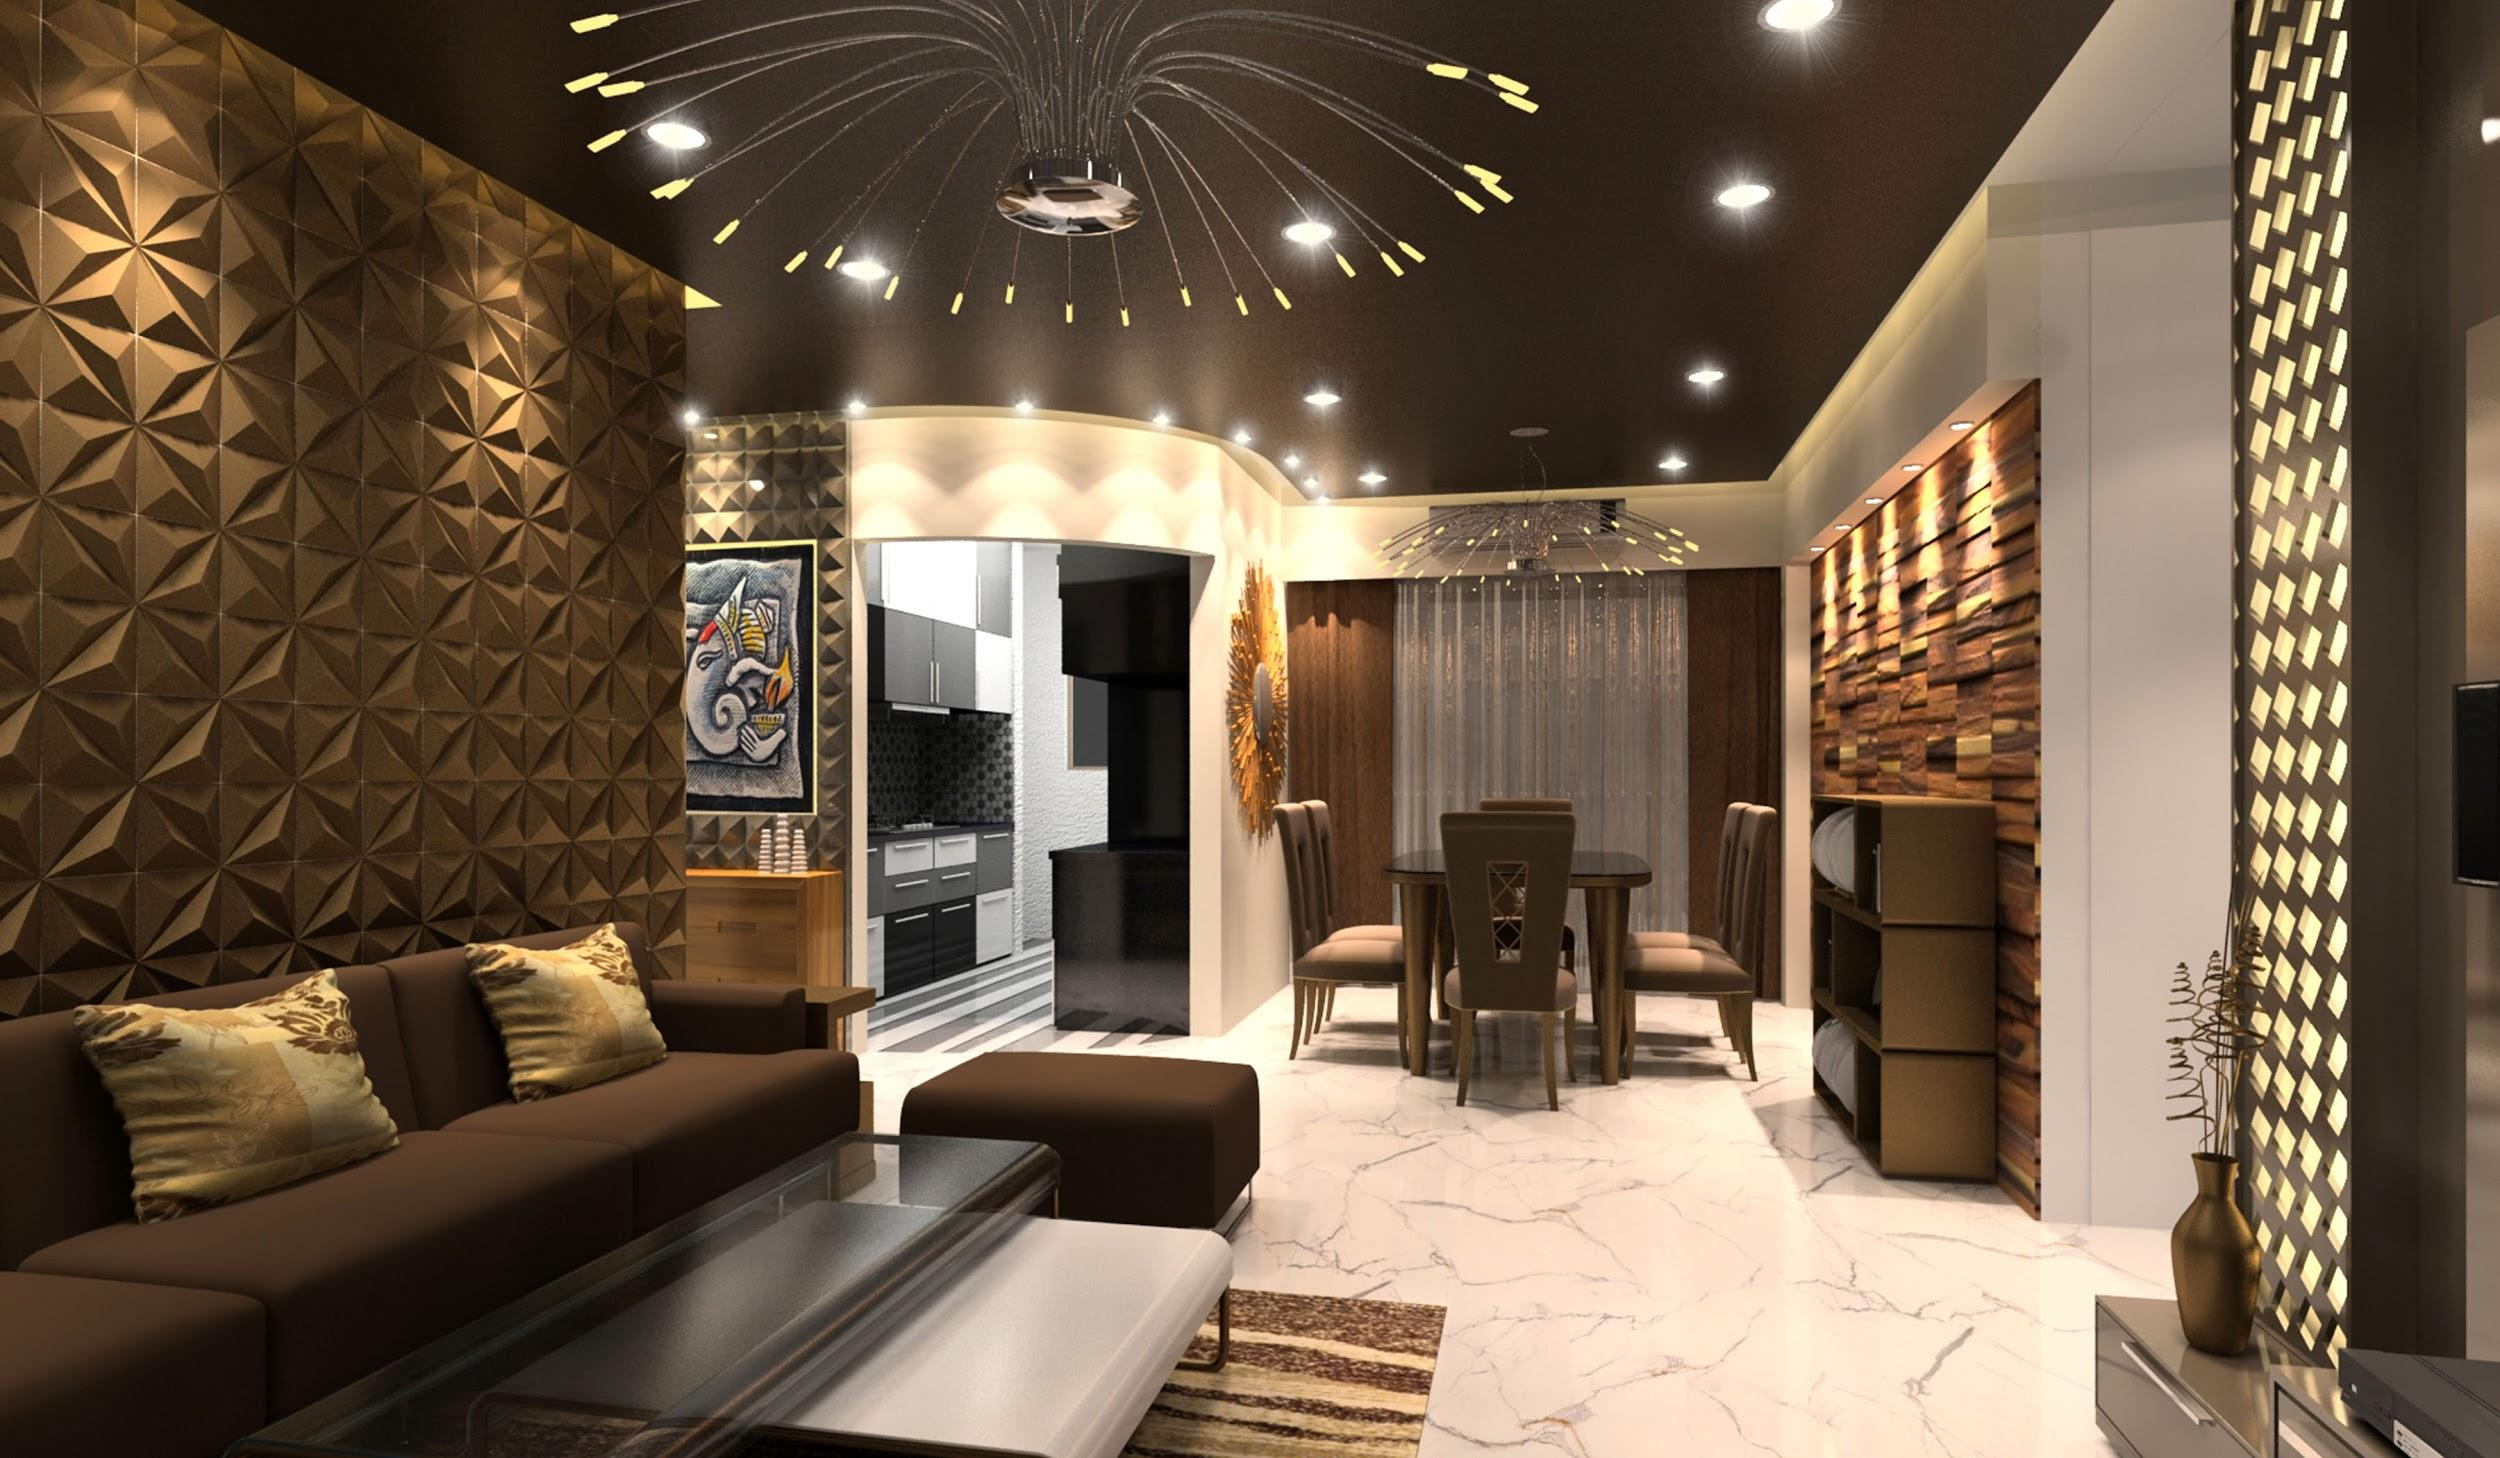 Why interior designing is important for your house?